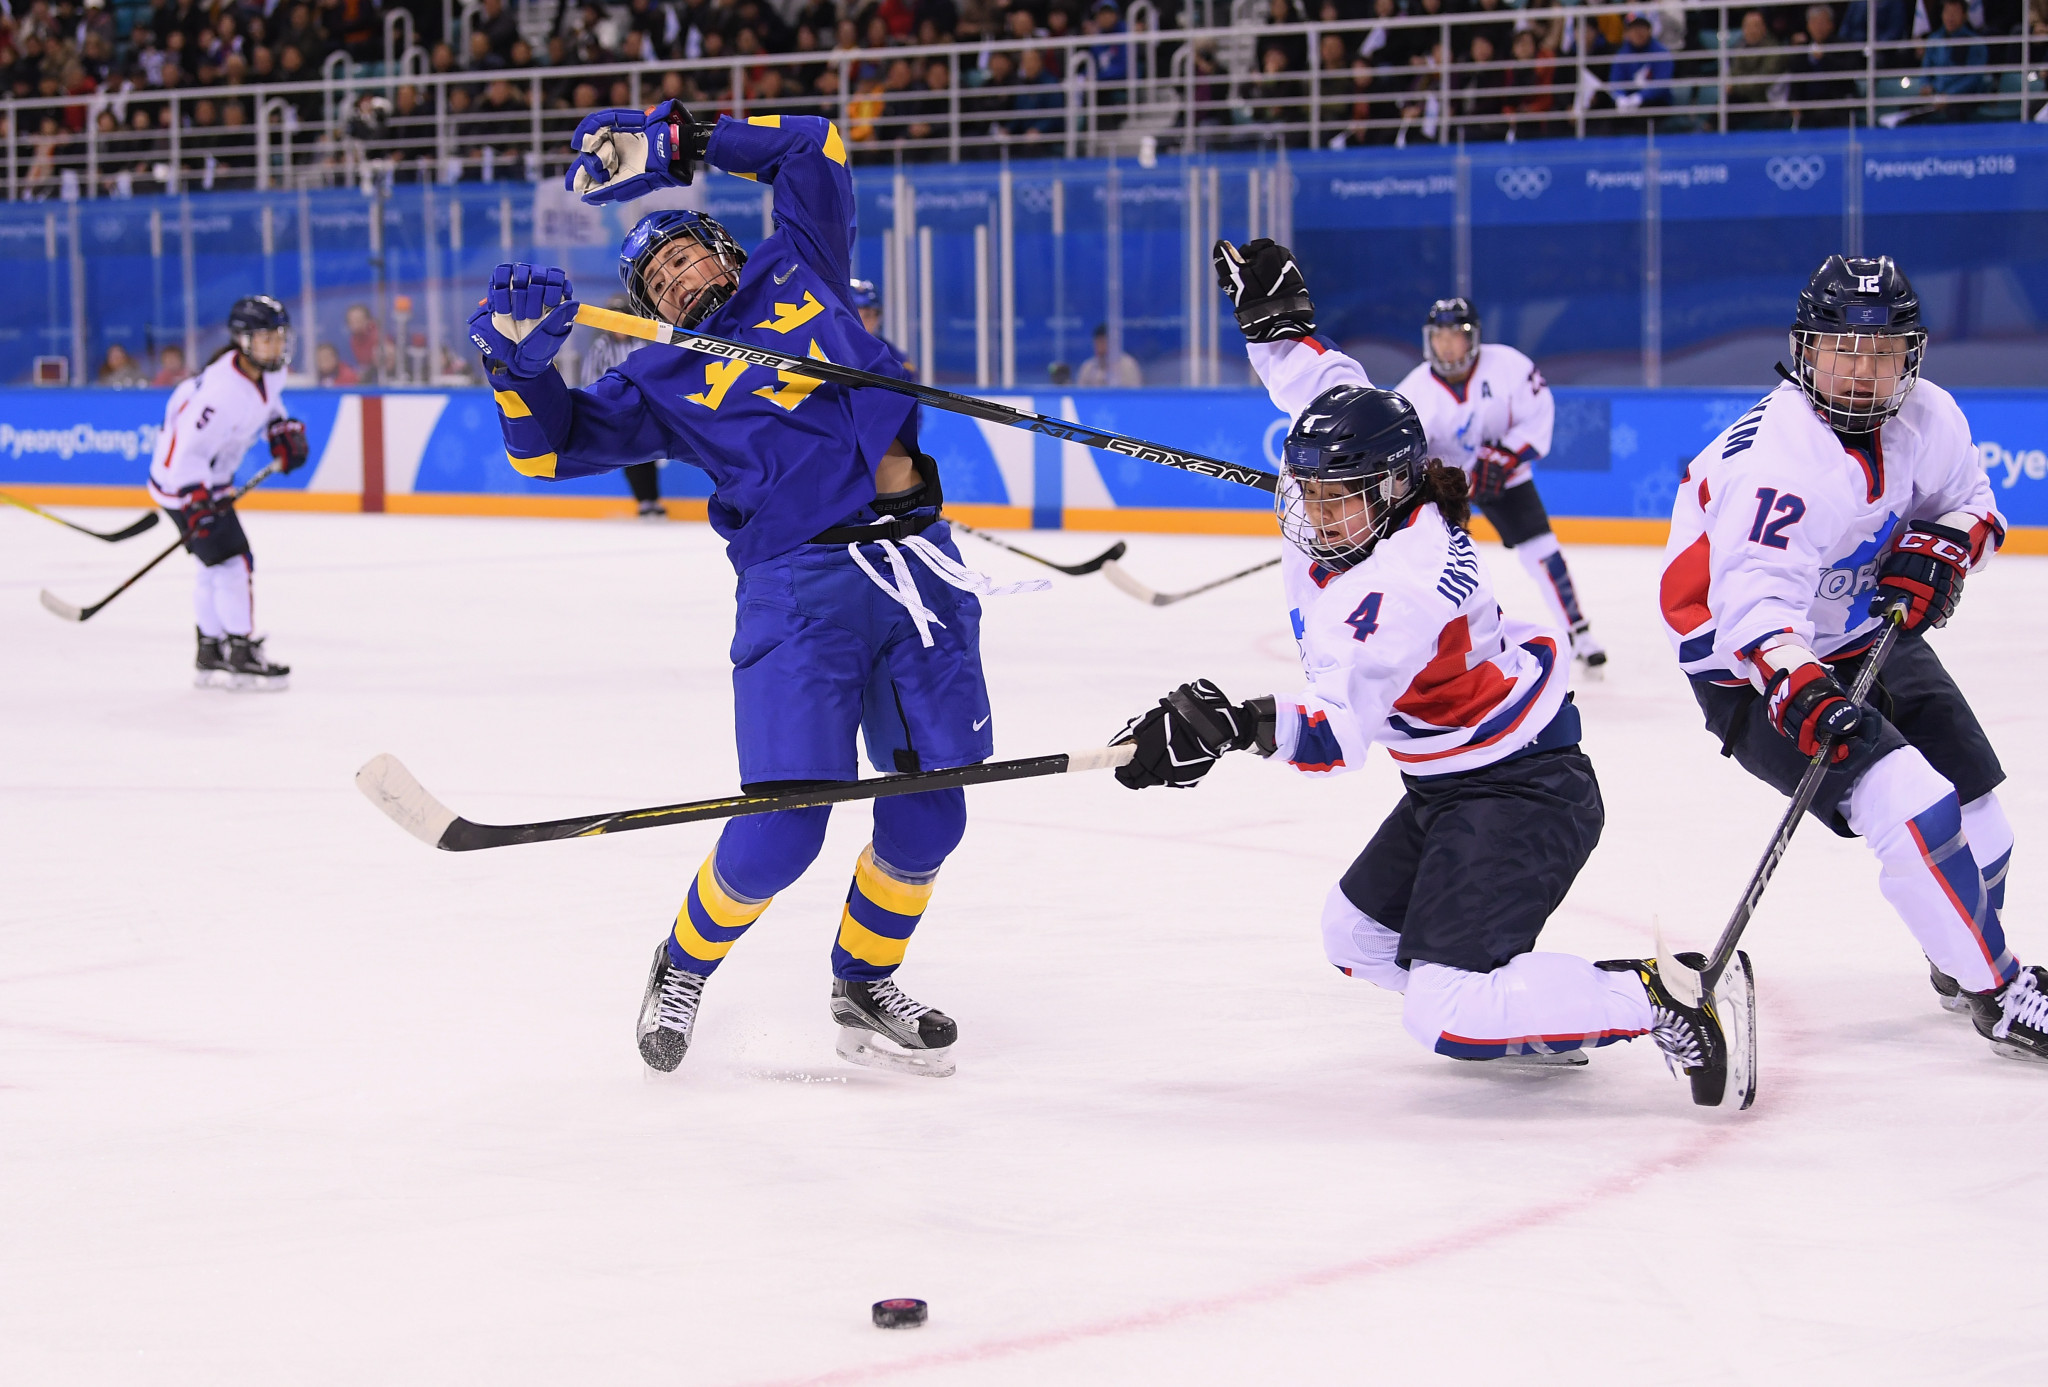 North Korean ice hockey player Un Hyang Kim failed a drug test at Pyeongchang 2018 but was allowed to continue playing ©Getty Images